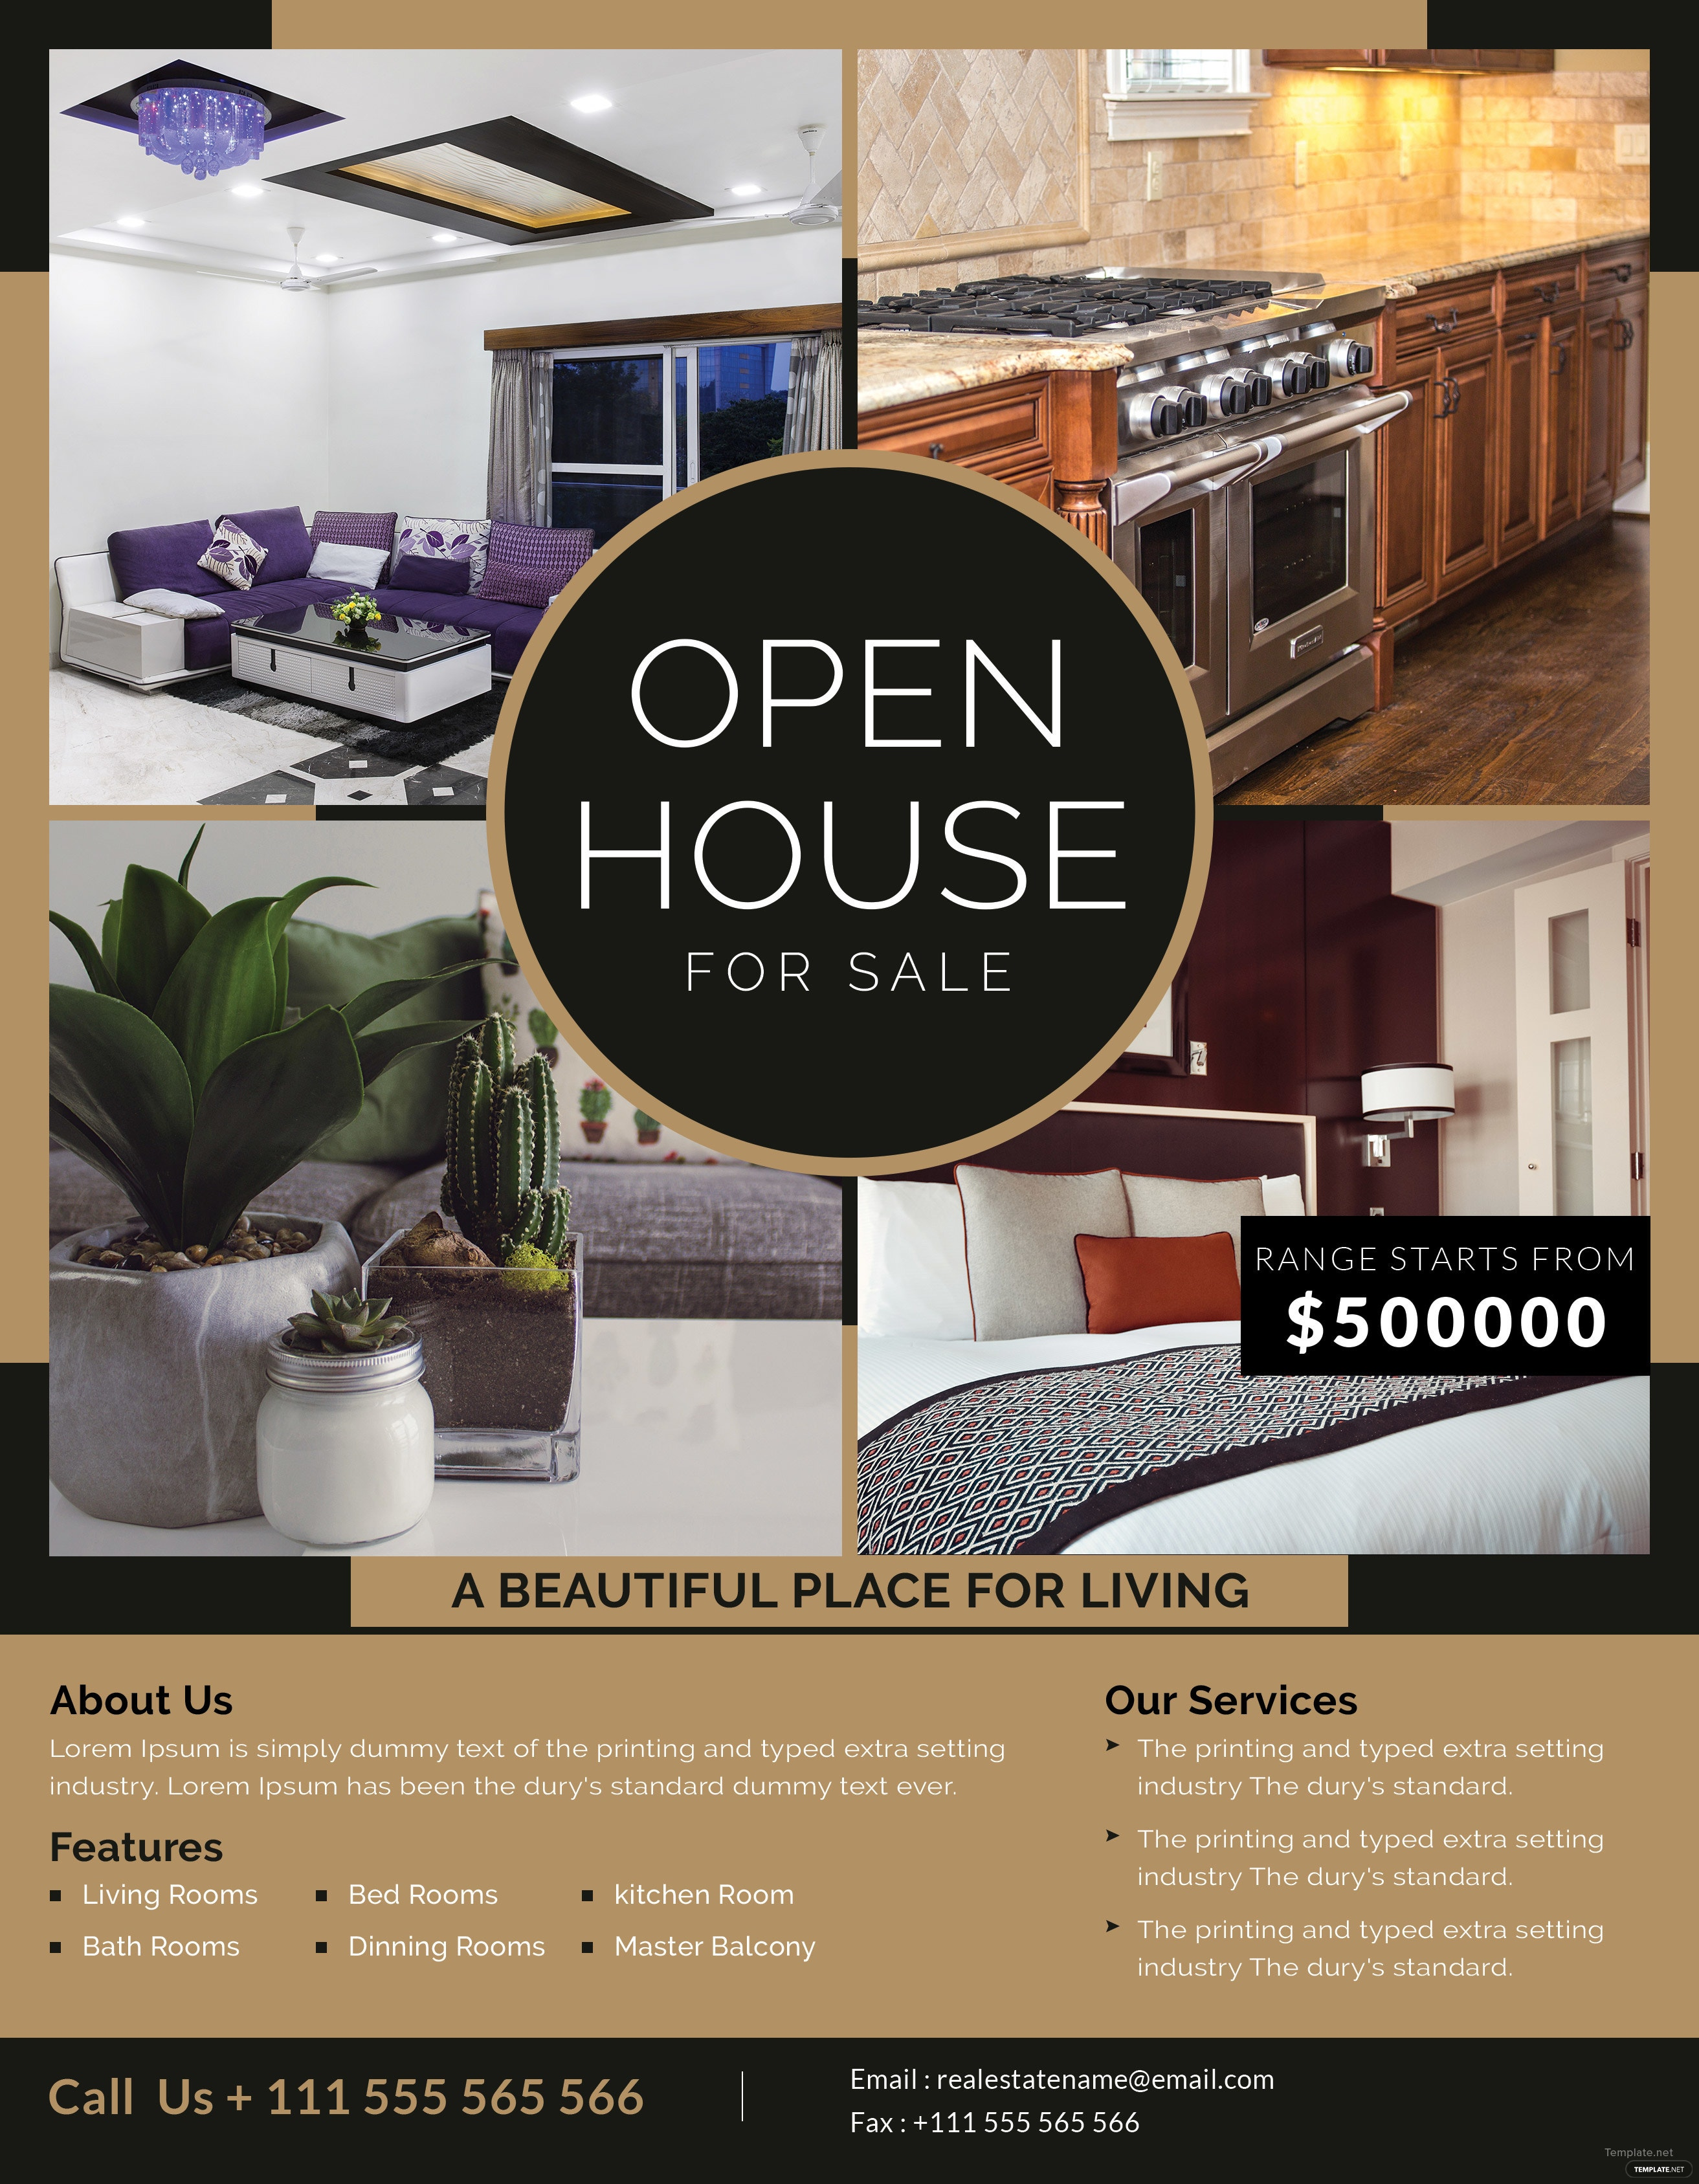 Open House Sale Flyer Template in Adobe Photoshop, Illustrator ...